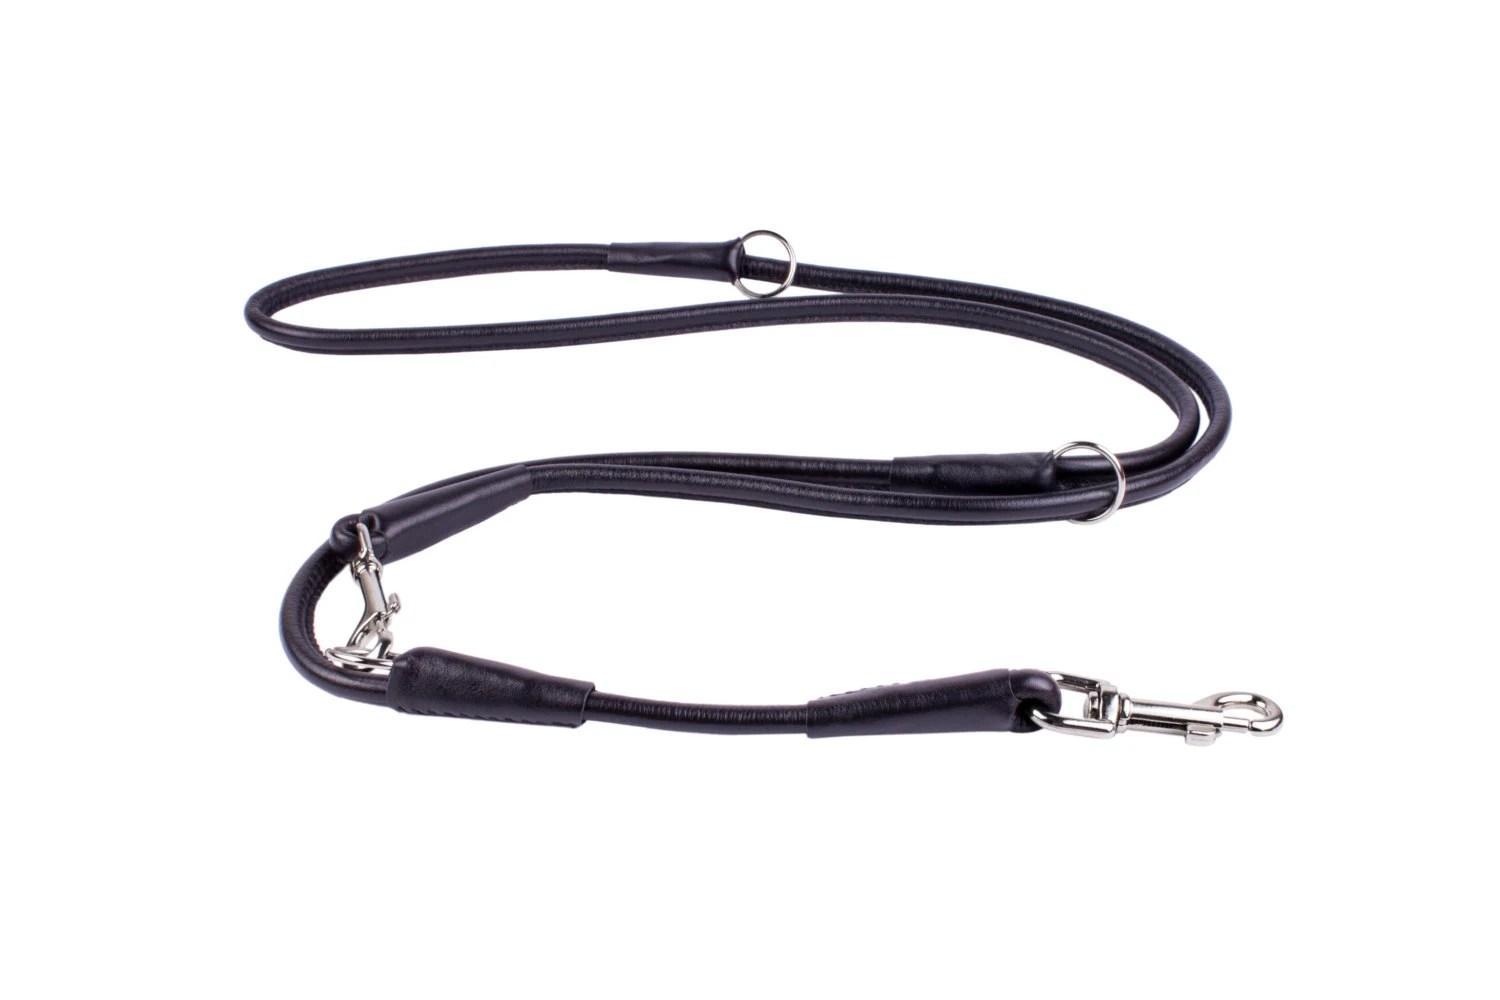 Multi Functional Dog Leash Glance Black Rolled Leather 4 5 6